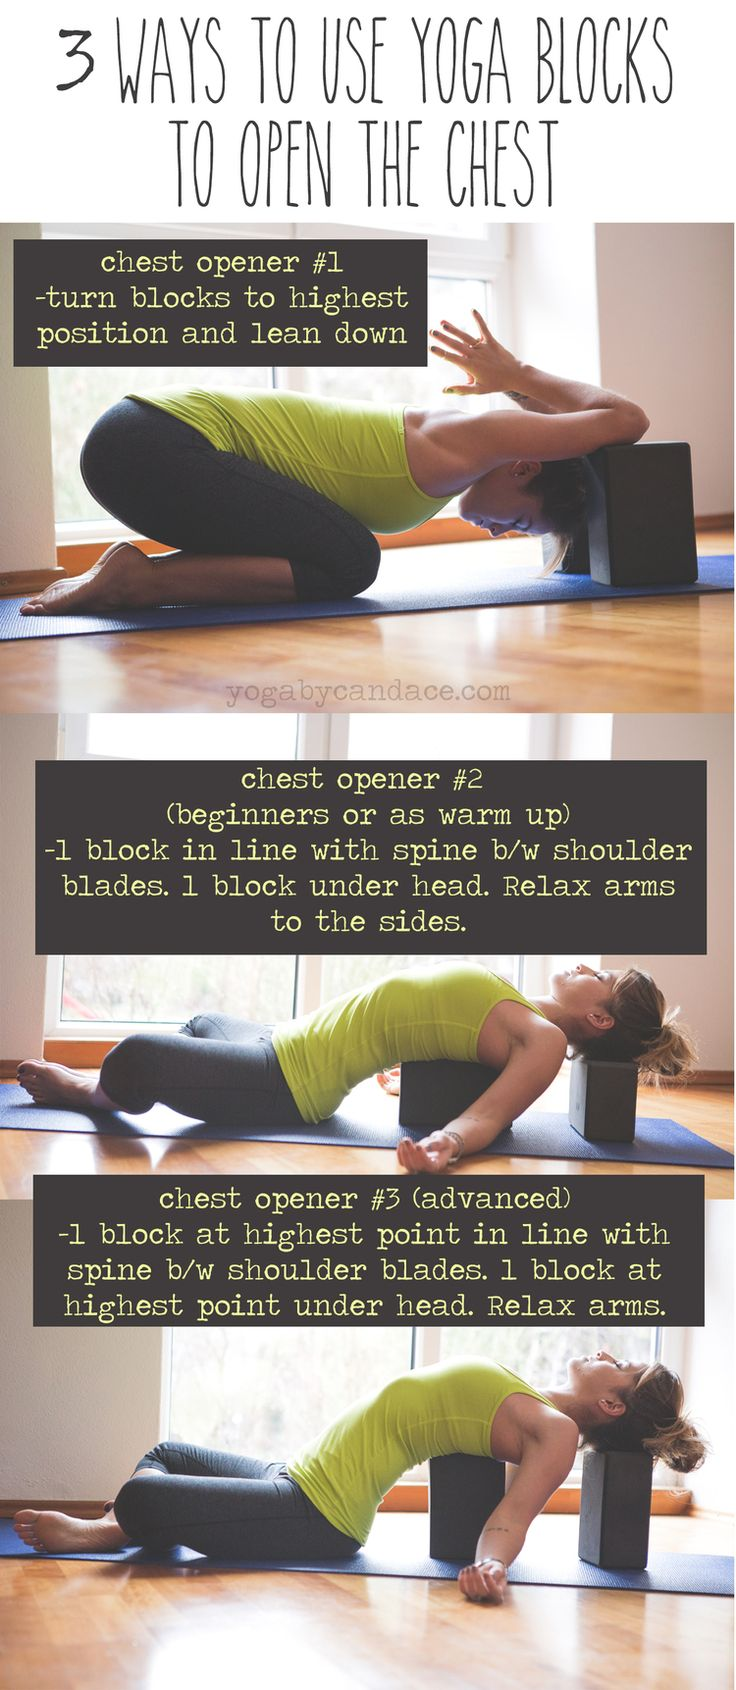 Pin now, practice later! Yoga for heart opening